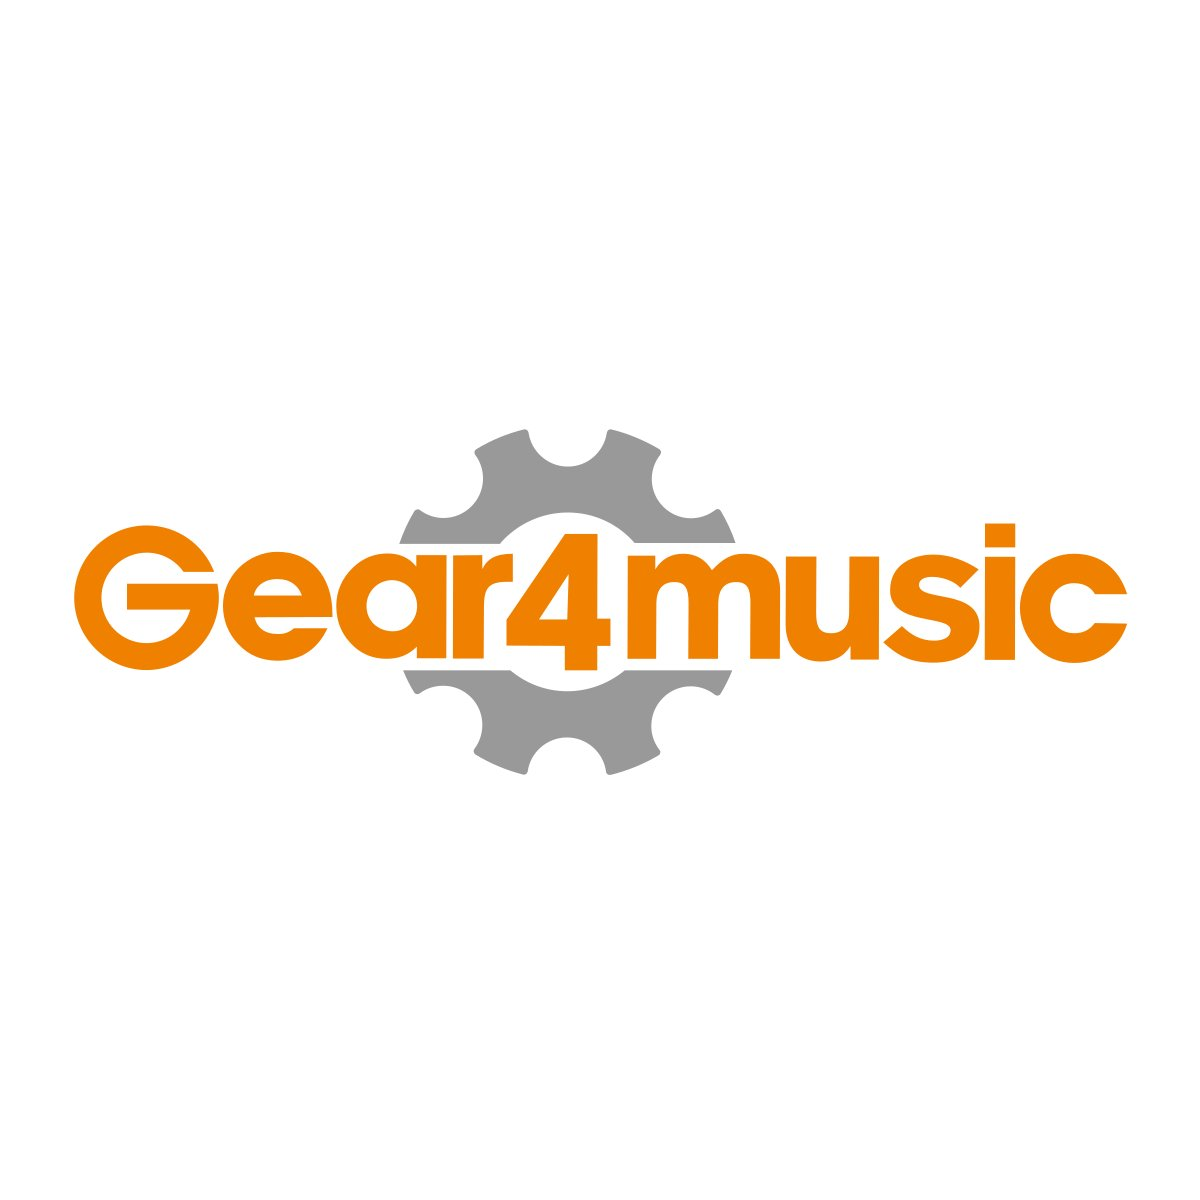 Coppergate Flicorno tenore intermedio by Gear4music